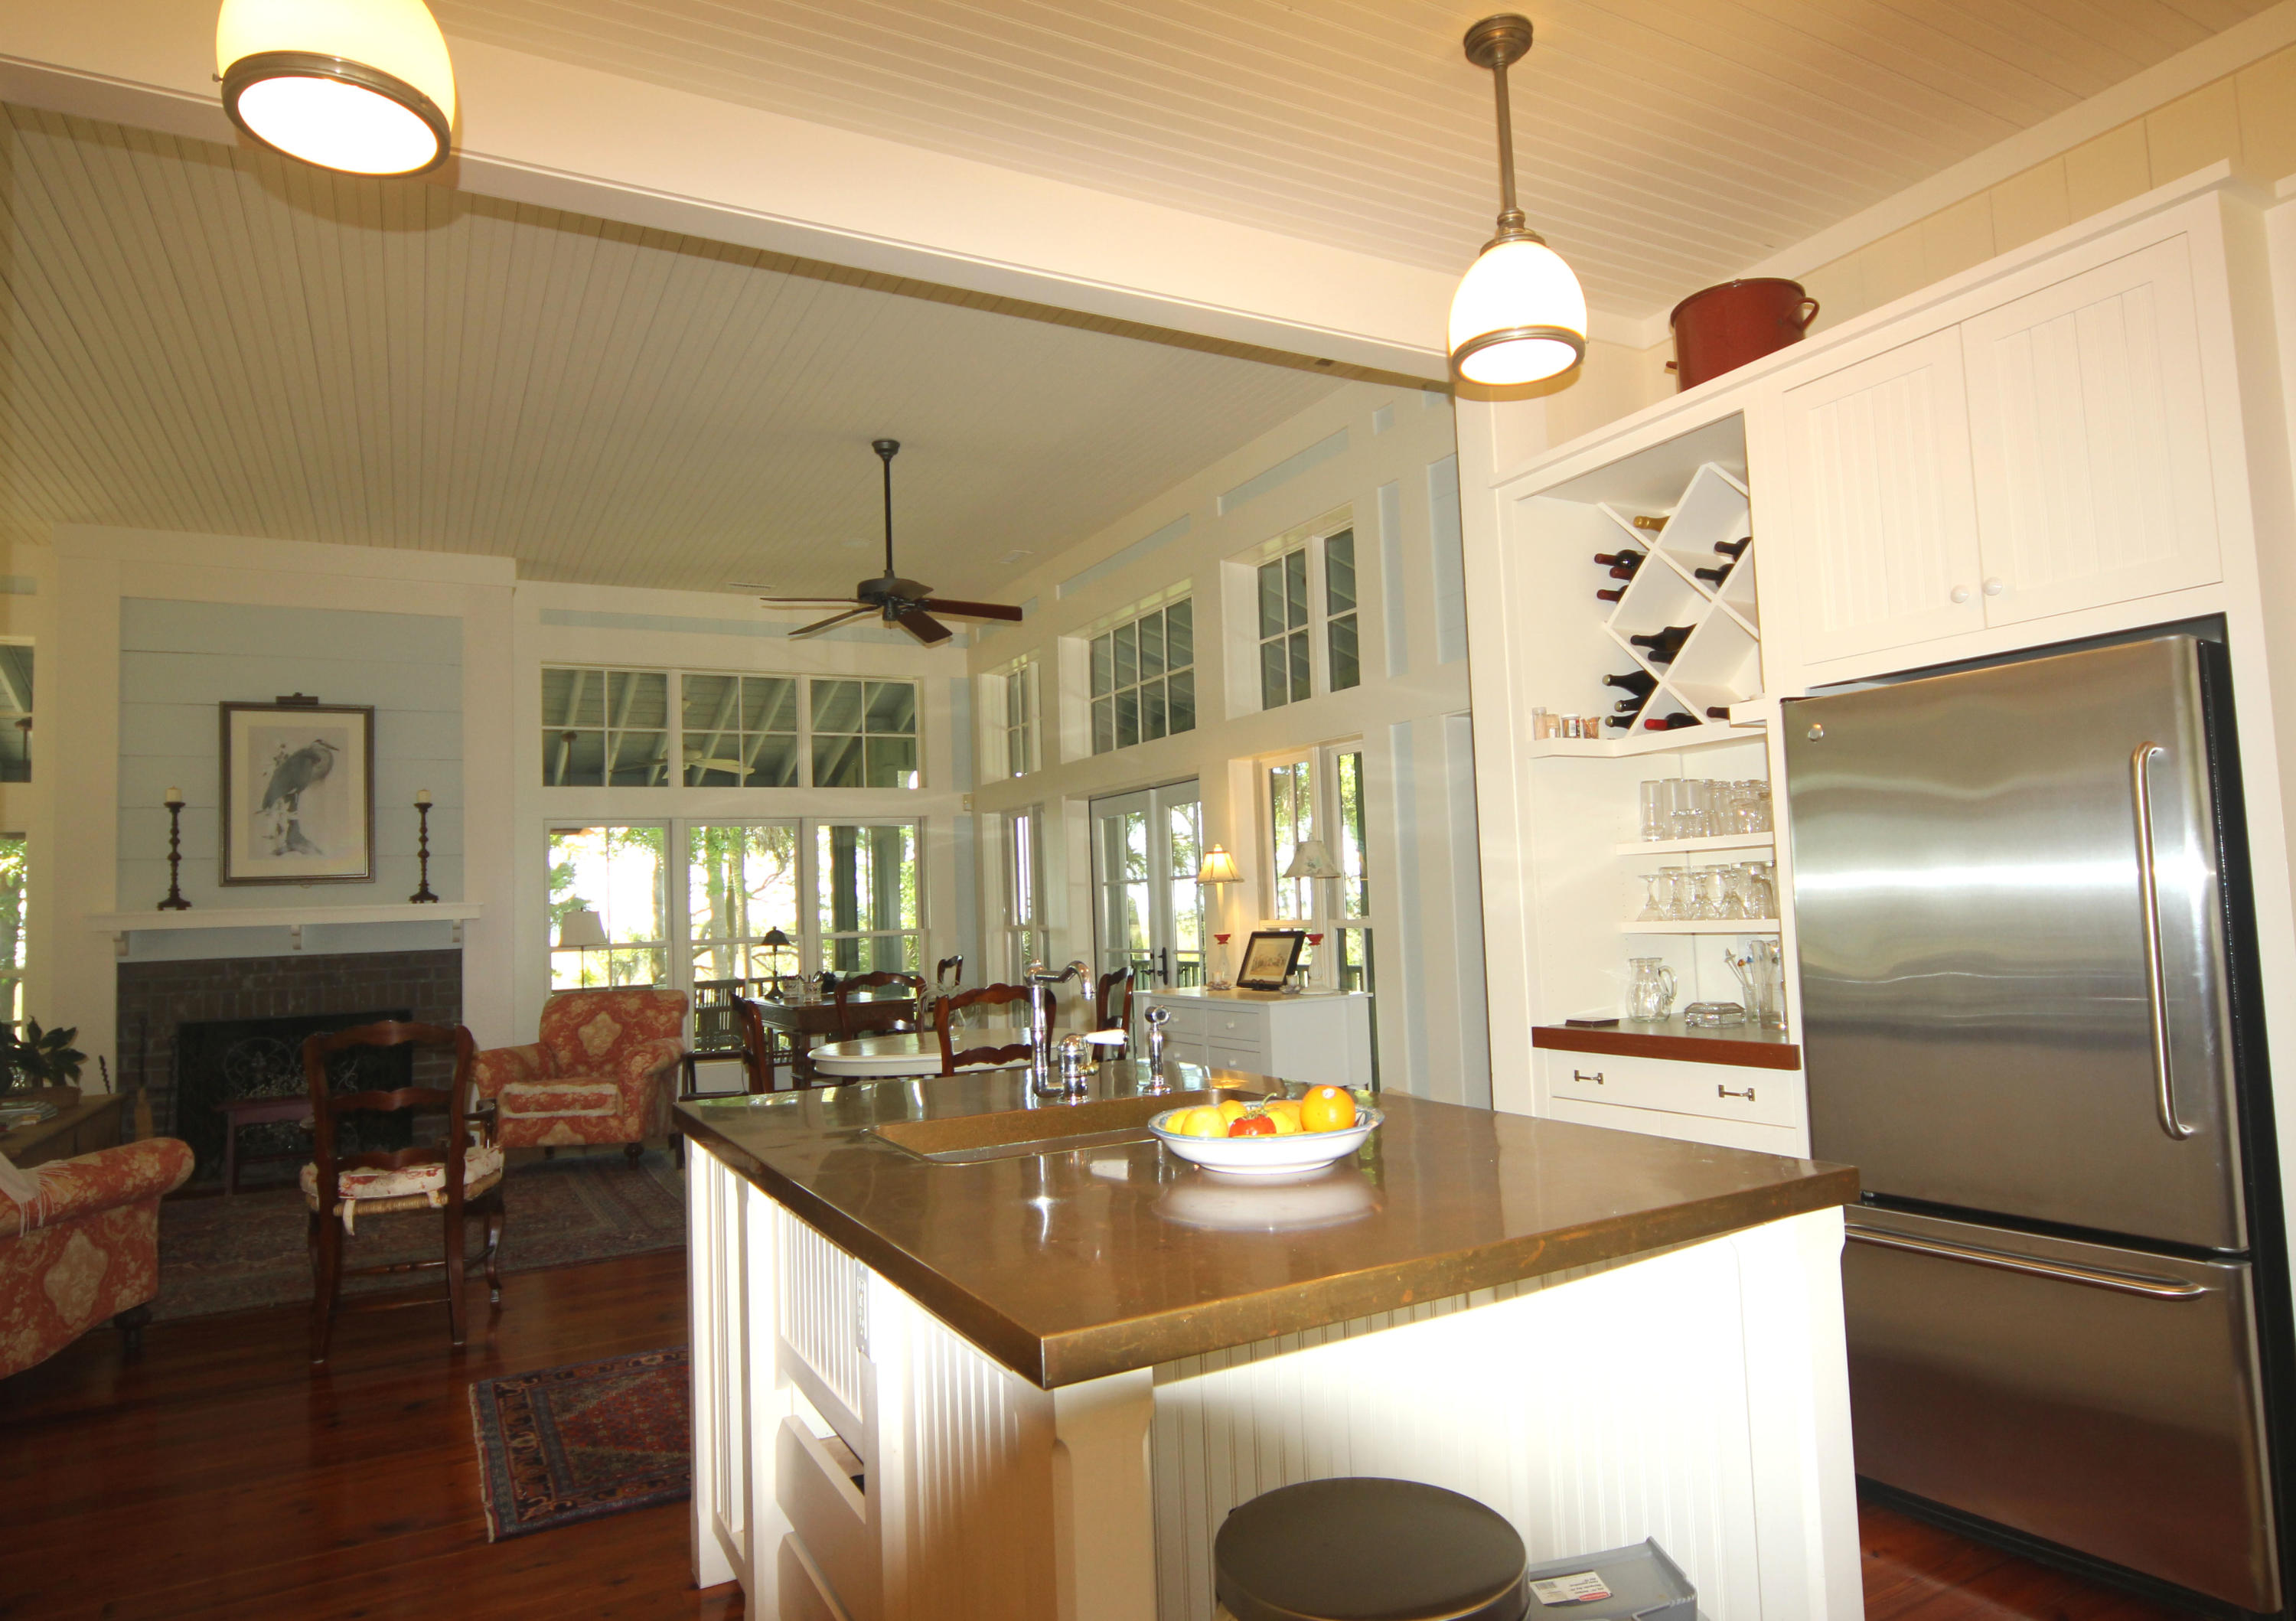 Bailey Island Homes For Sale - 2012 Bailey Island, Edisto Island, SC - 9